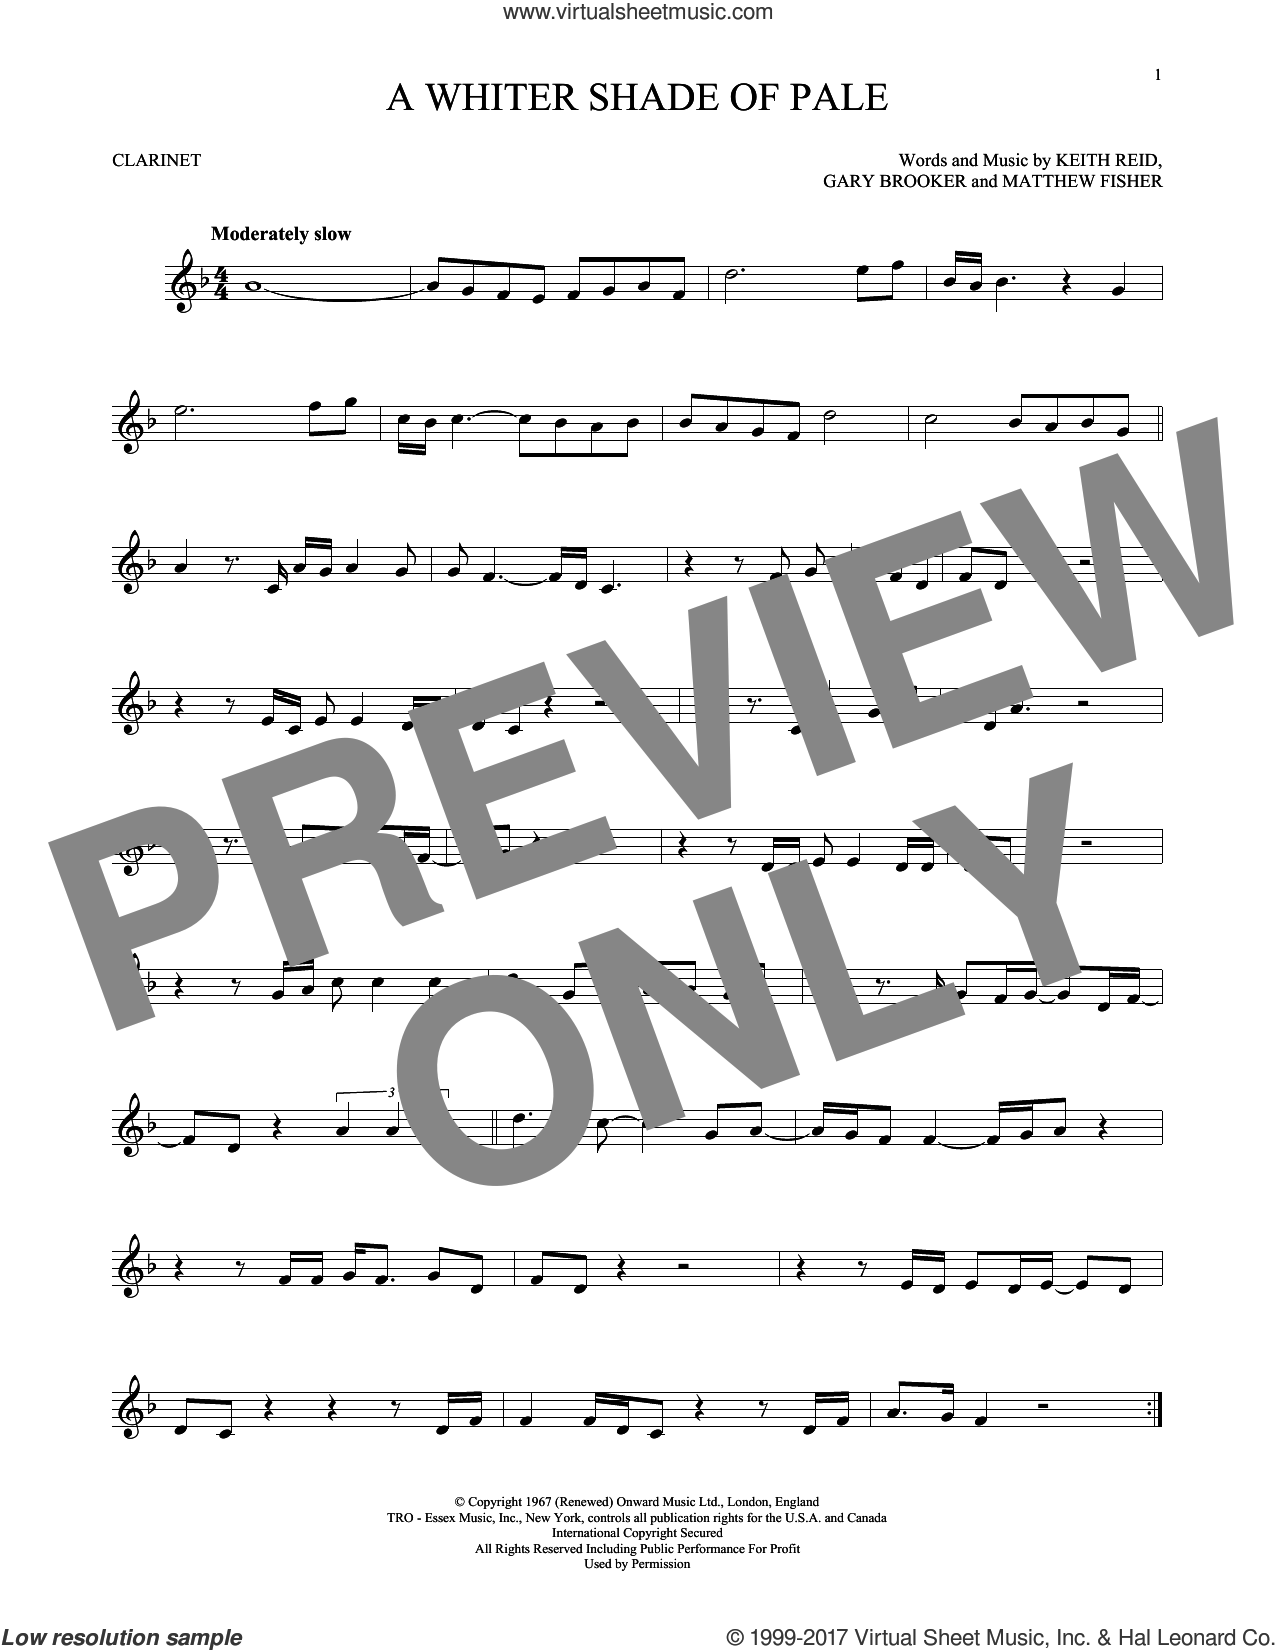 A Whiter Shade Of Pale sheet music for clarinet solo by Procol Harum, Gary Brooker, Keith Reid and Matthew Fisher, intermediate skill level